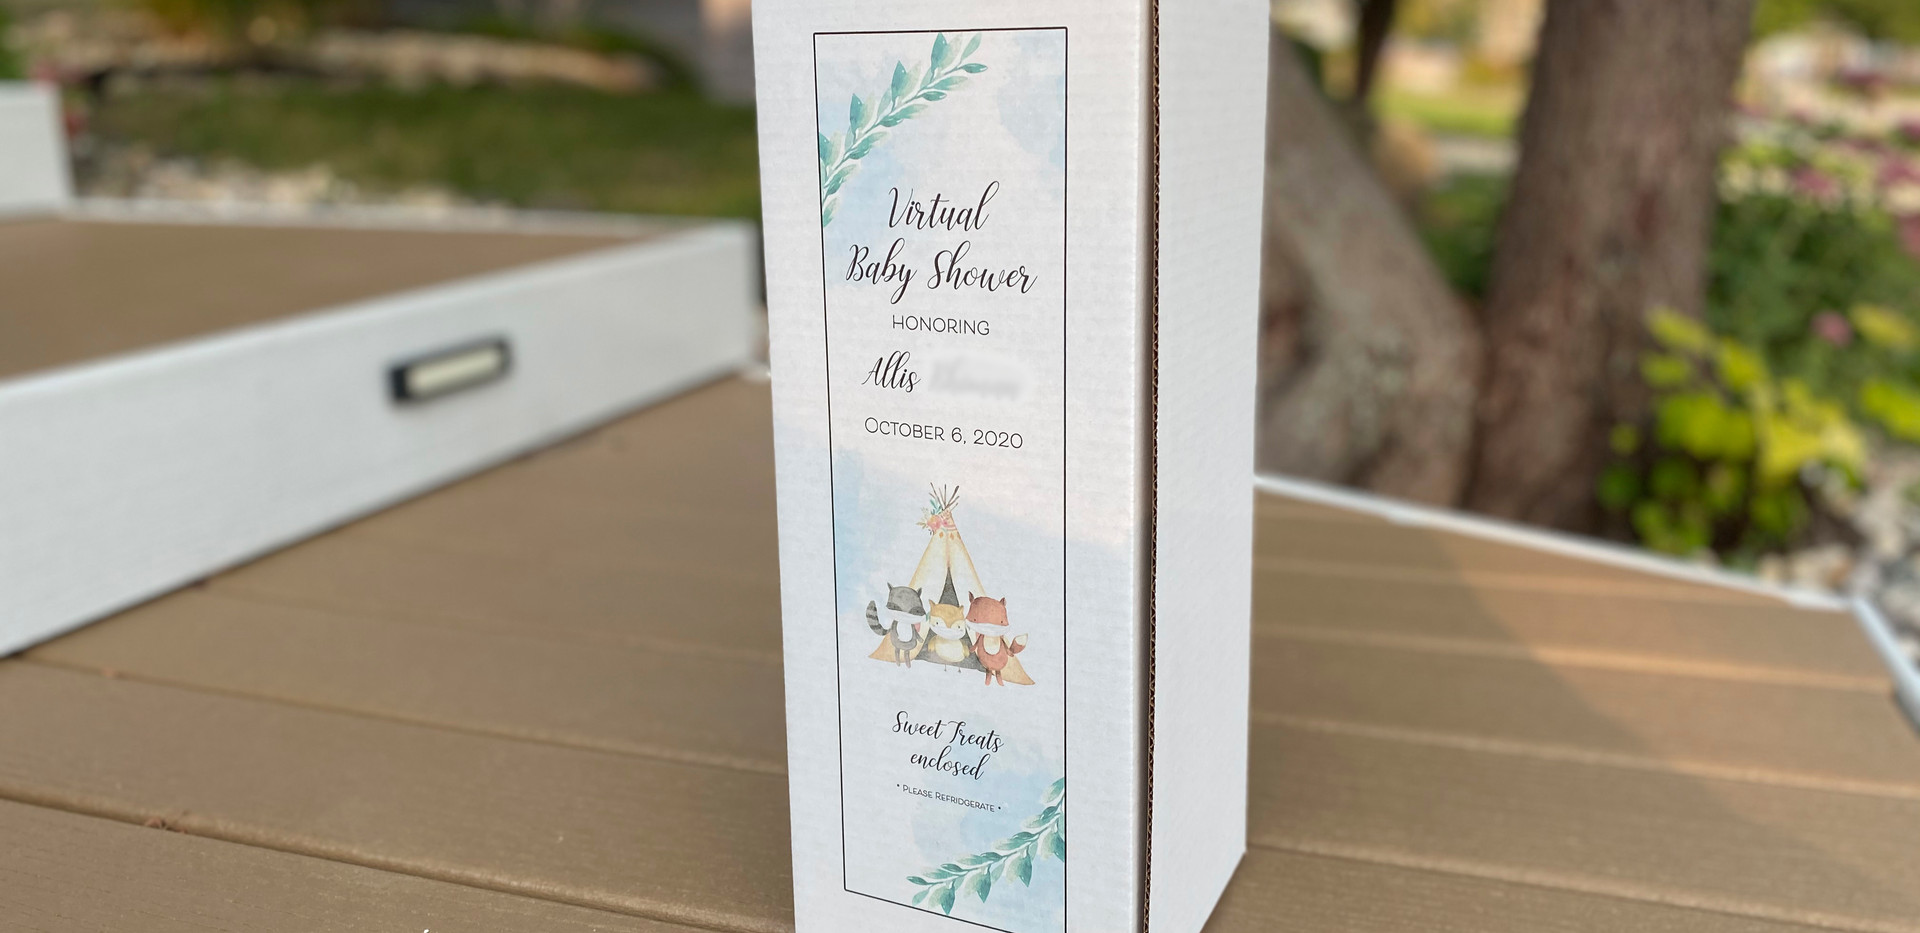 For Virtual Baby Shower